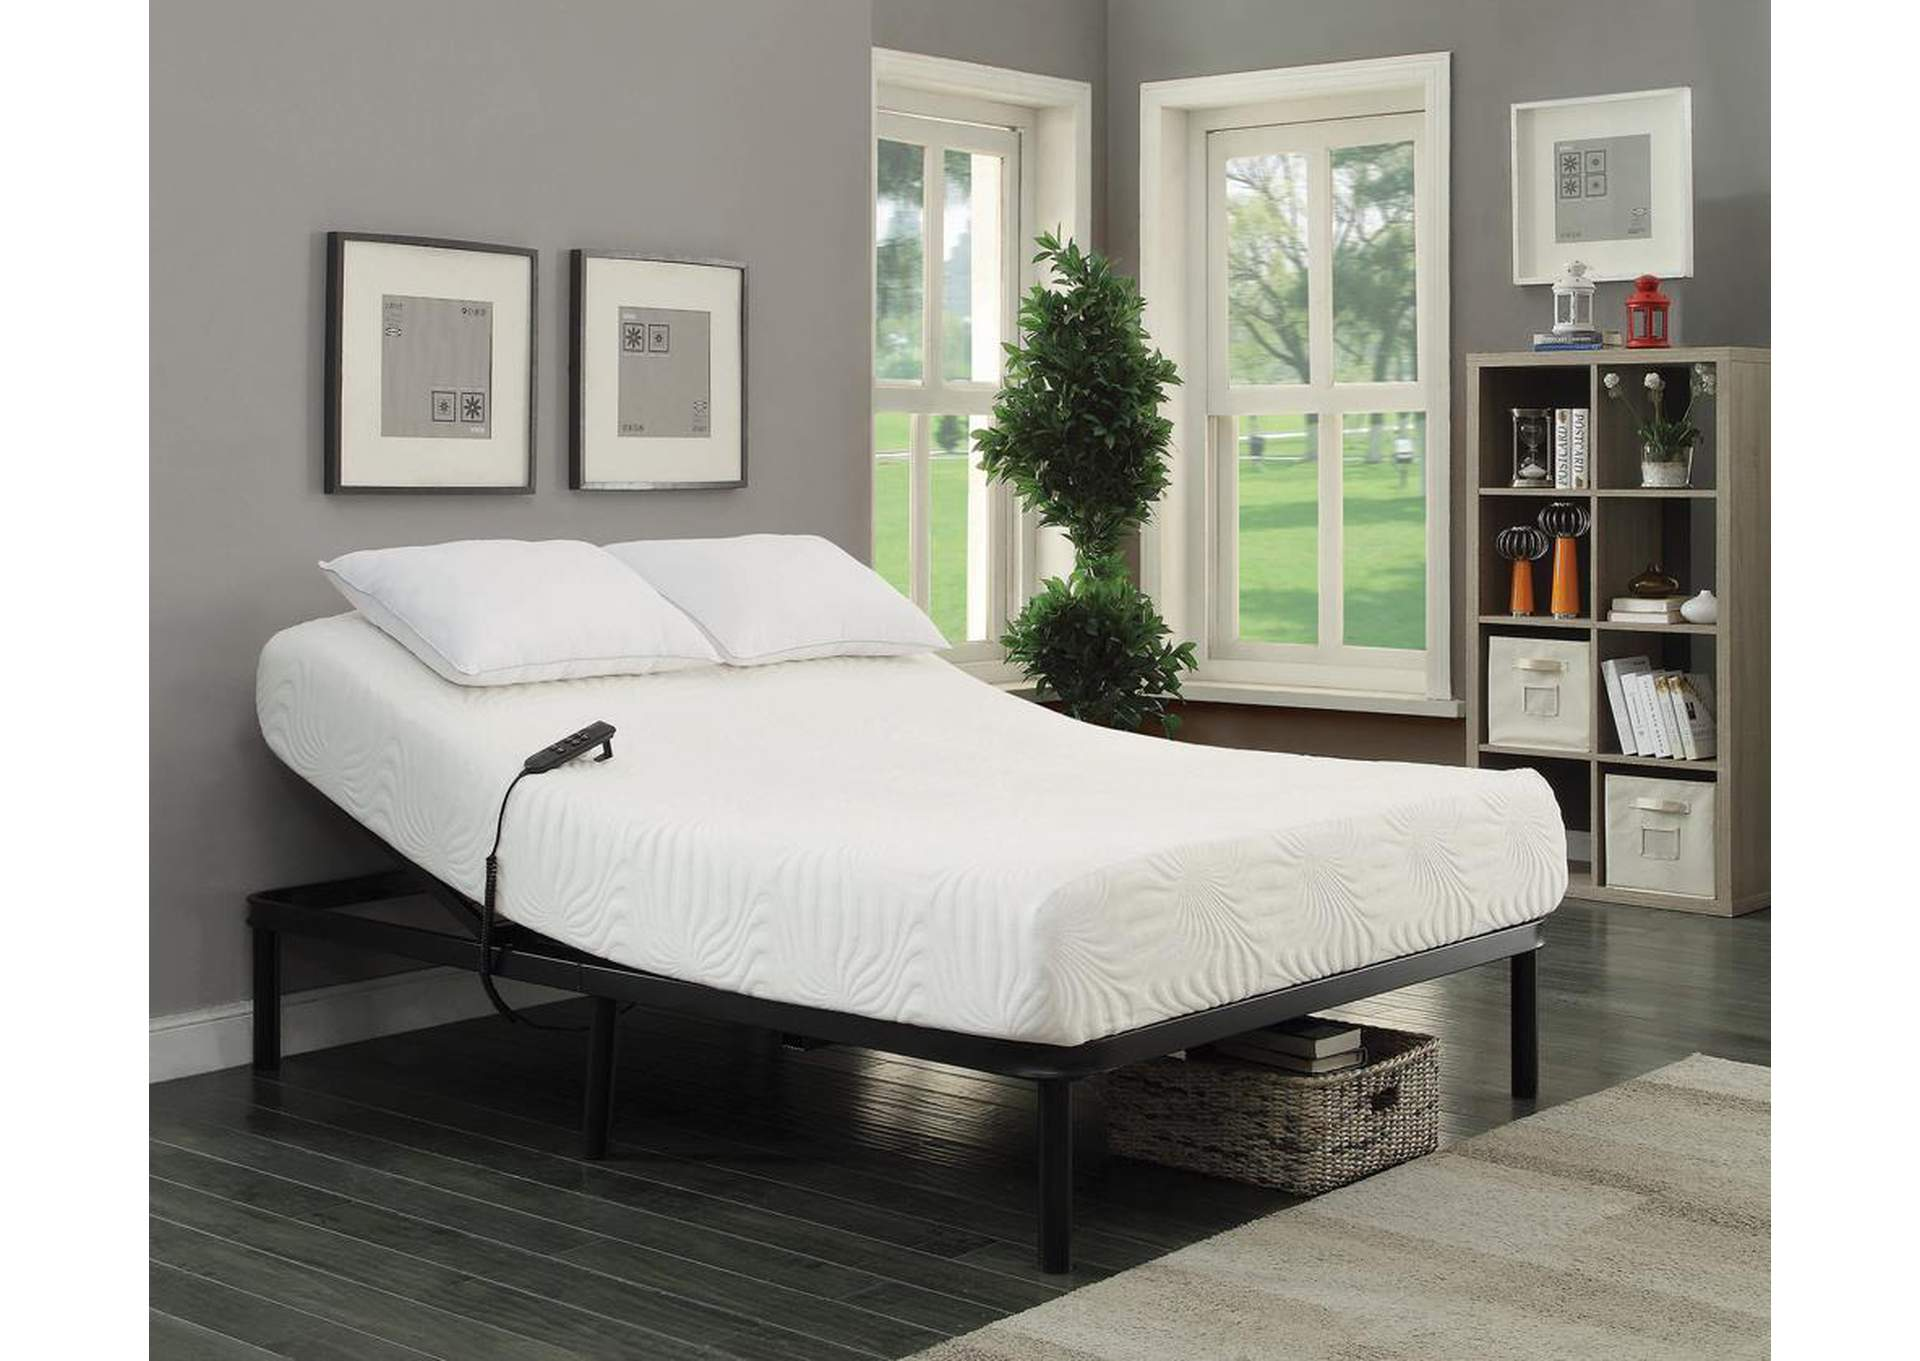 Stanhope Black Adjustable Full Bed,Coaster Furniture